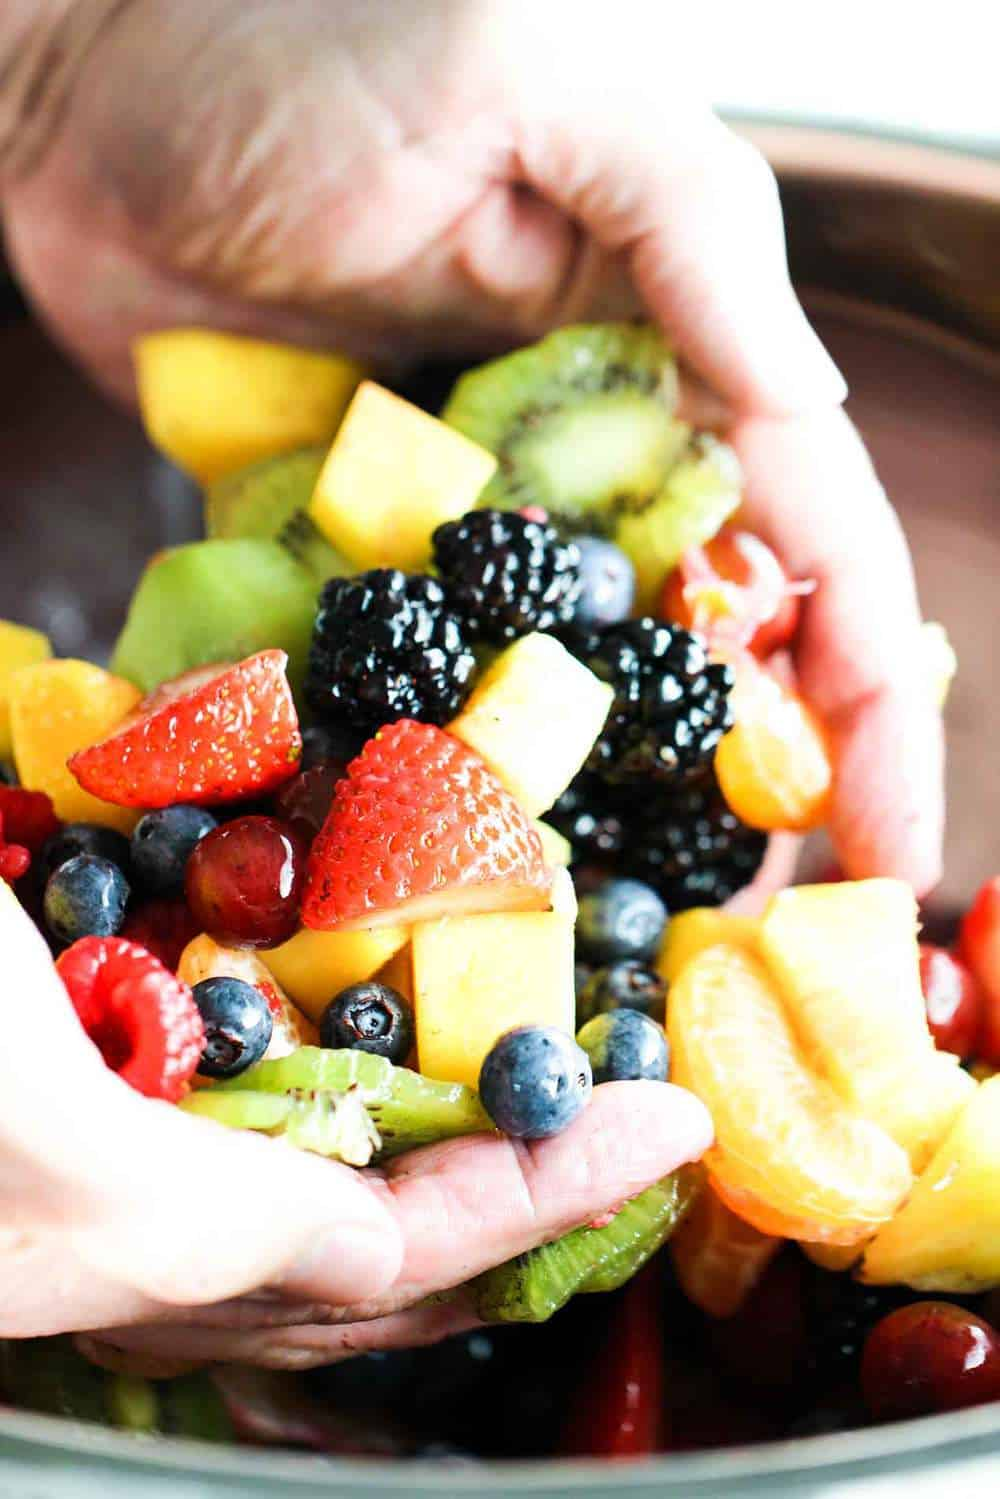 Two hands holding an assortment of berries and fruit for summer fruit salad